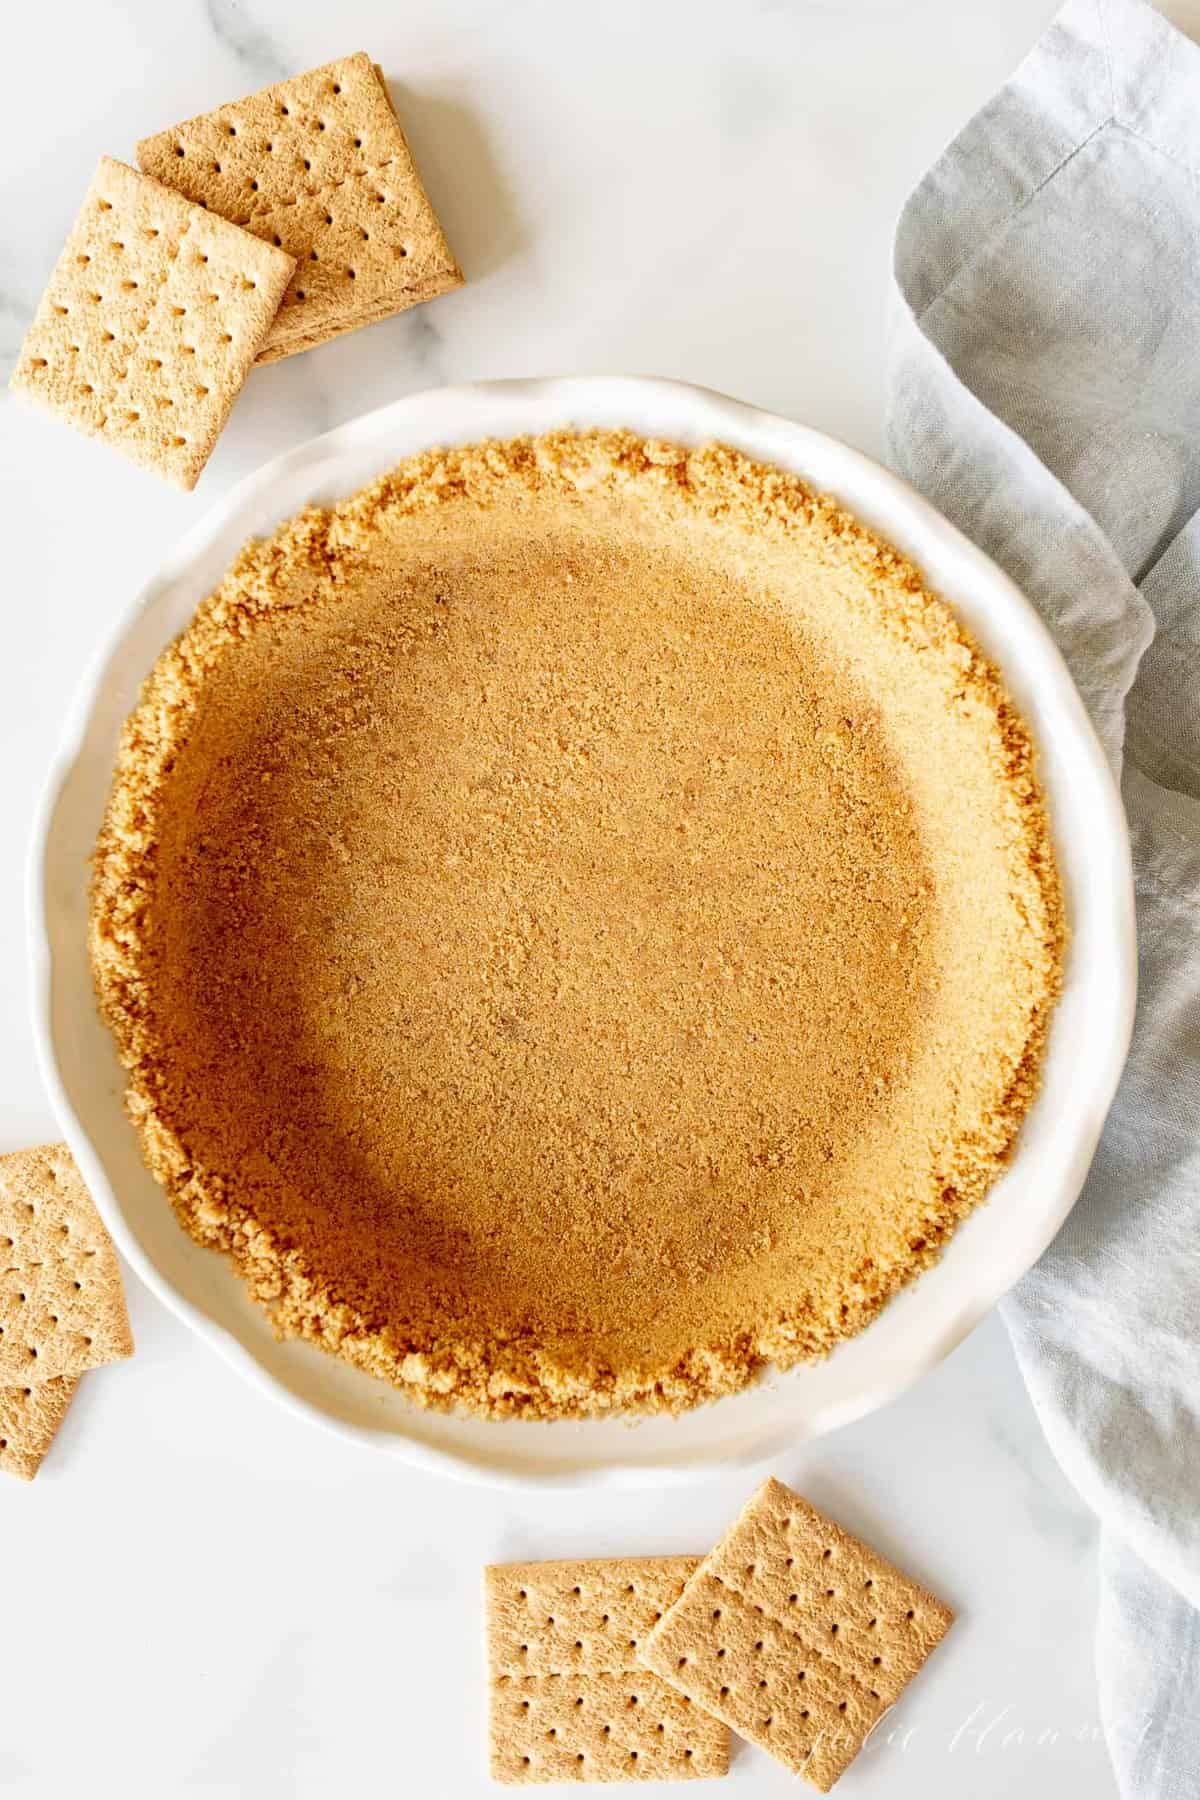 graham cracker crust in white dish with blue napkin